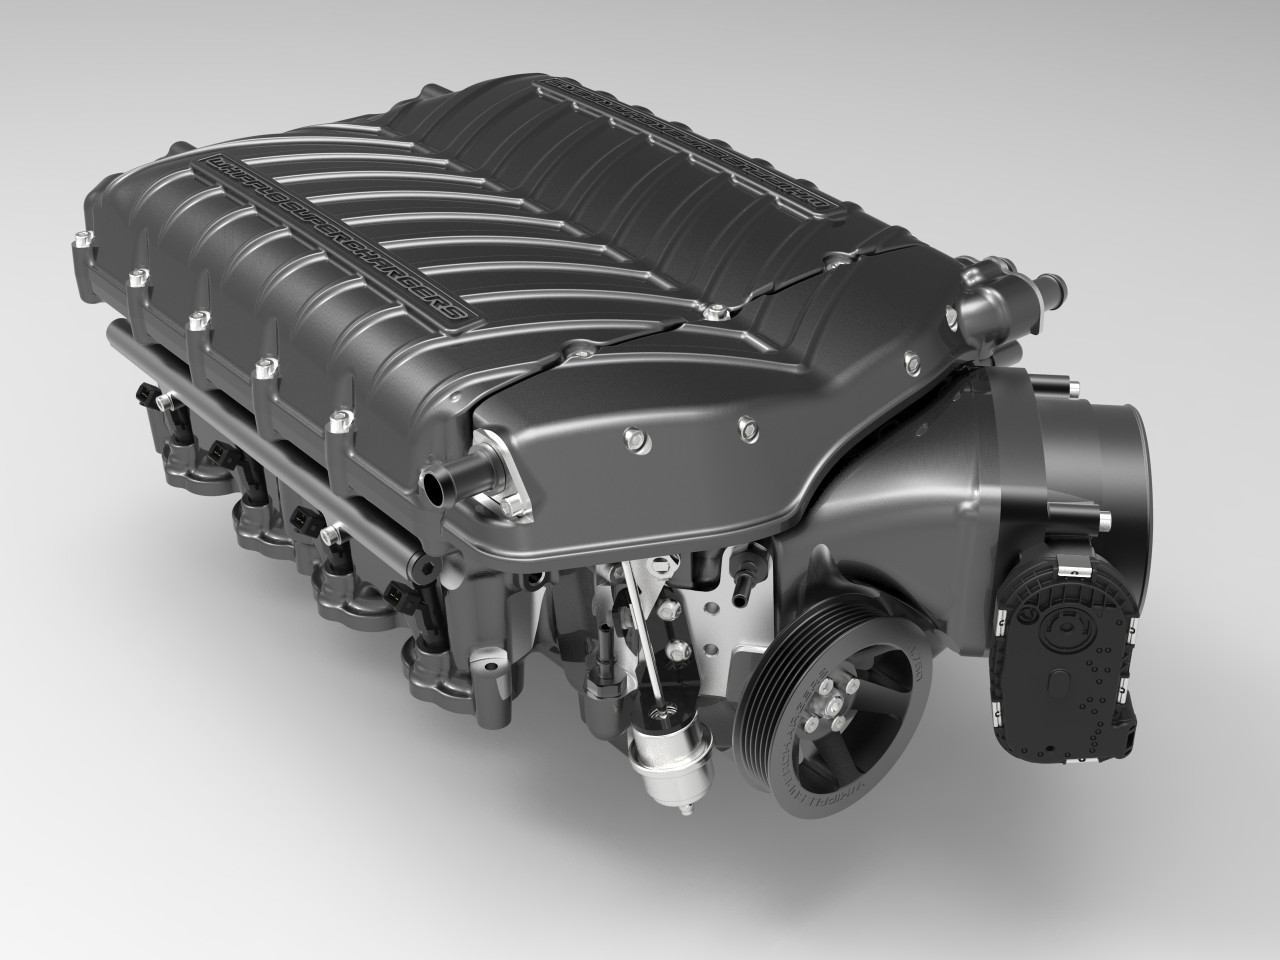 2018-2019 MUSTANG GT WHIPPLE SUPERCHARGER SYSTEM - Herrod